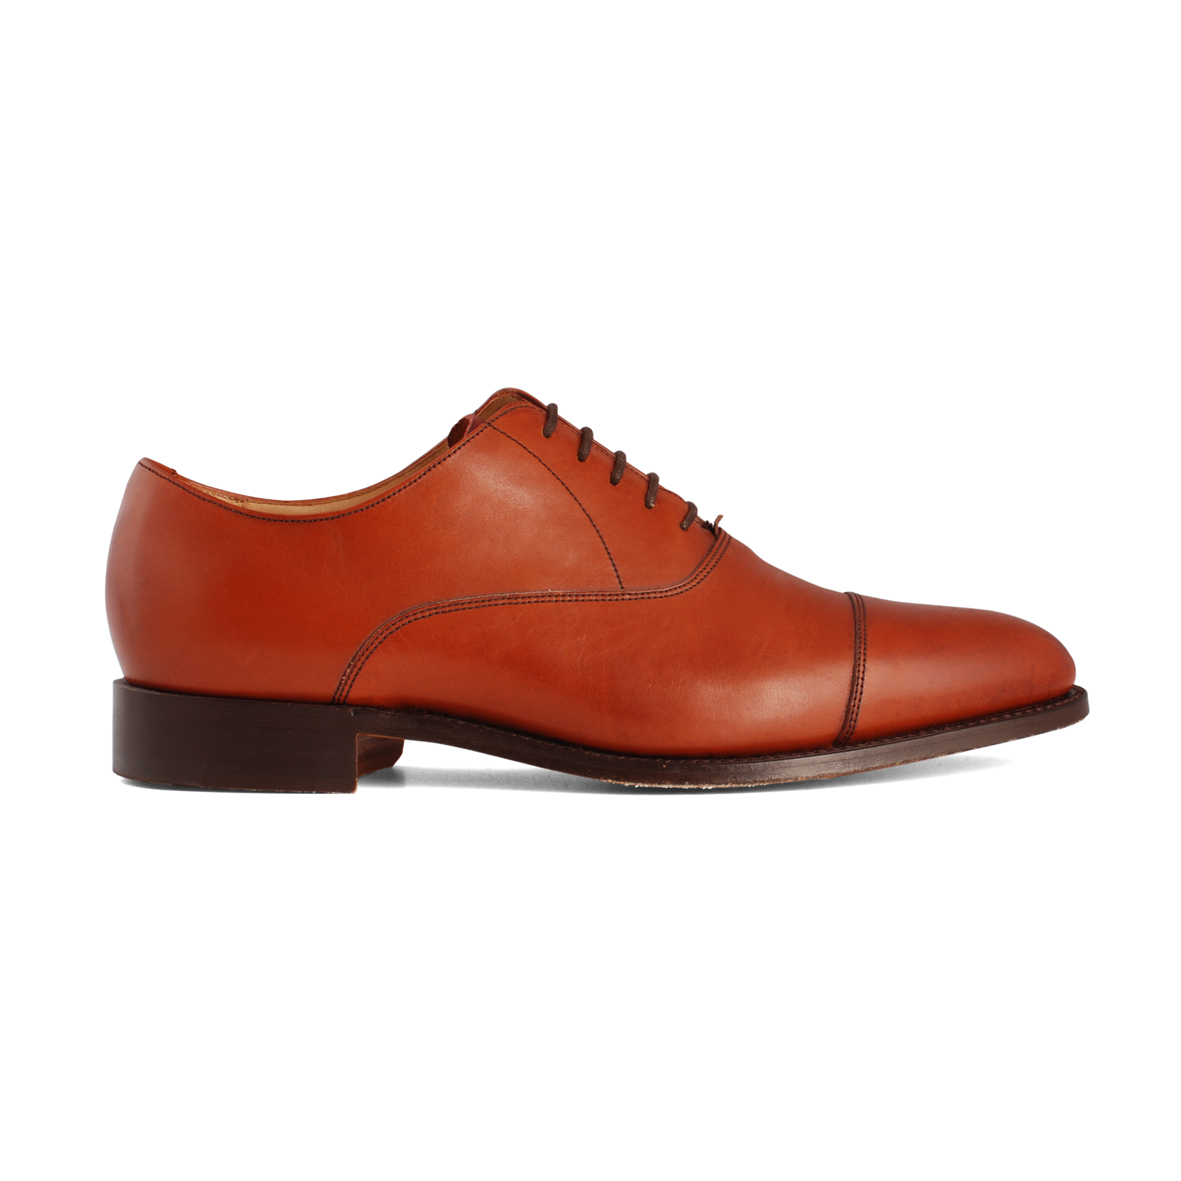 Barker Duxford Rosewood shoes